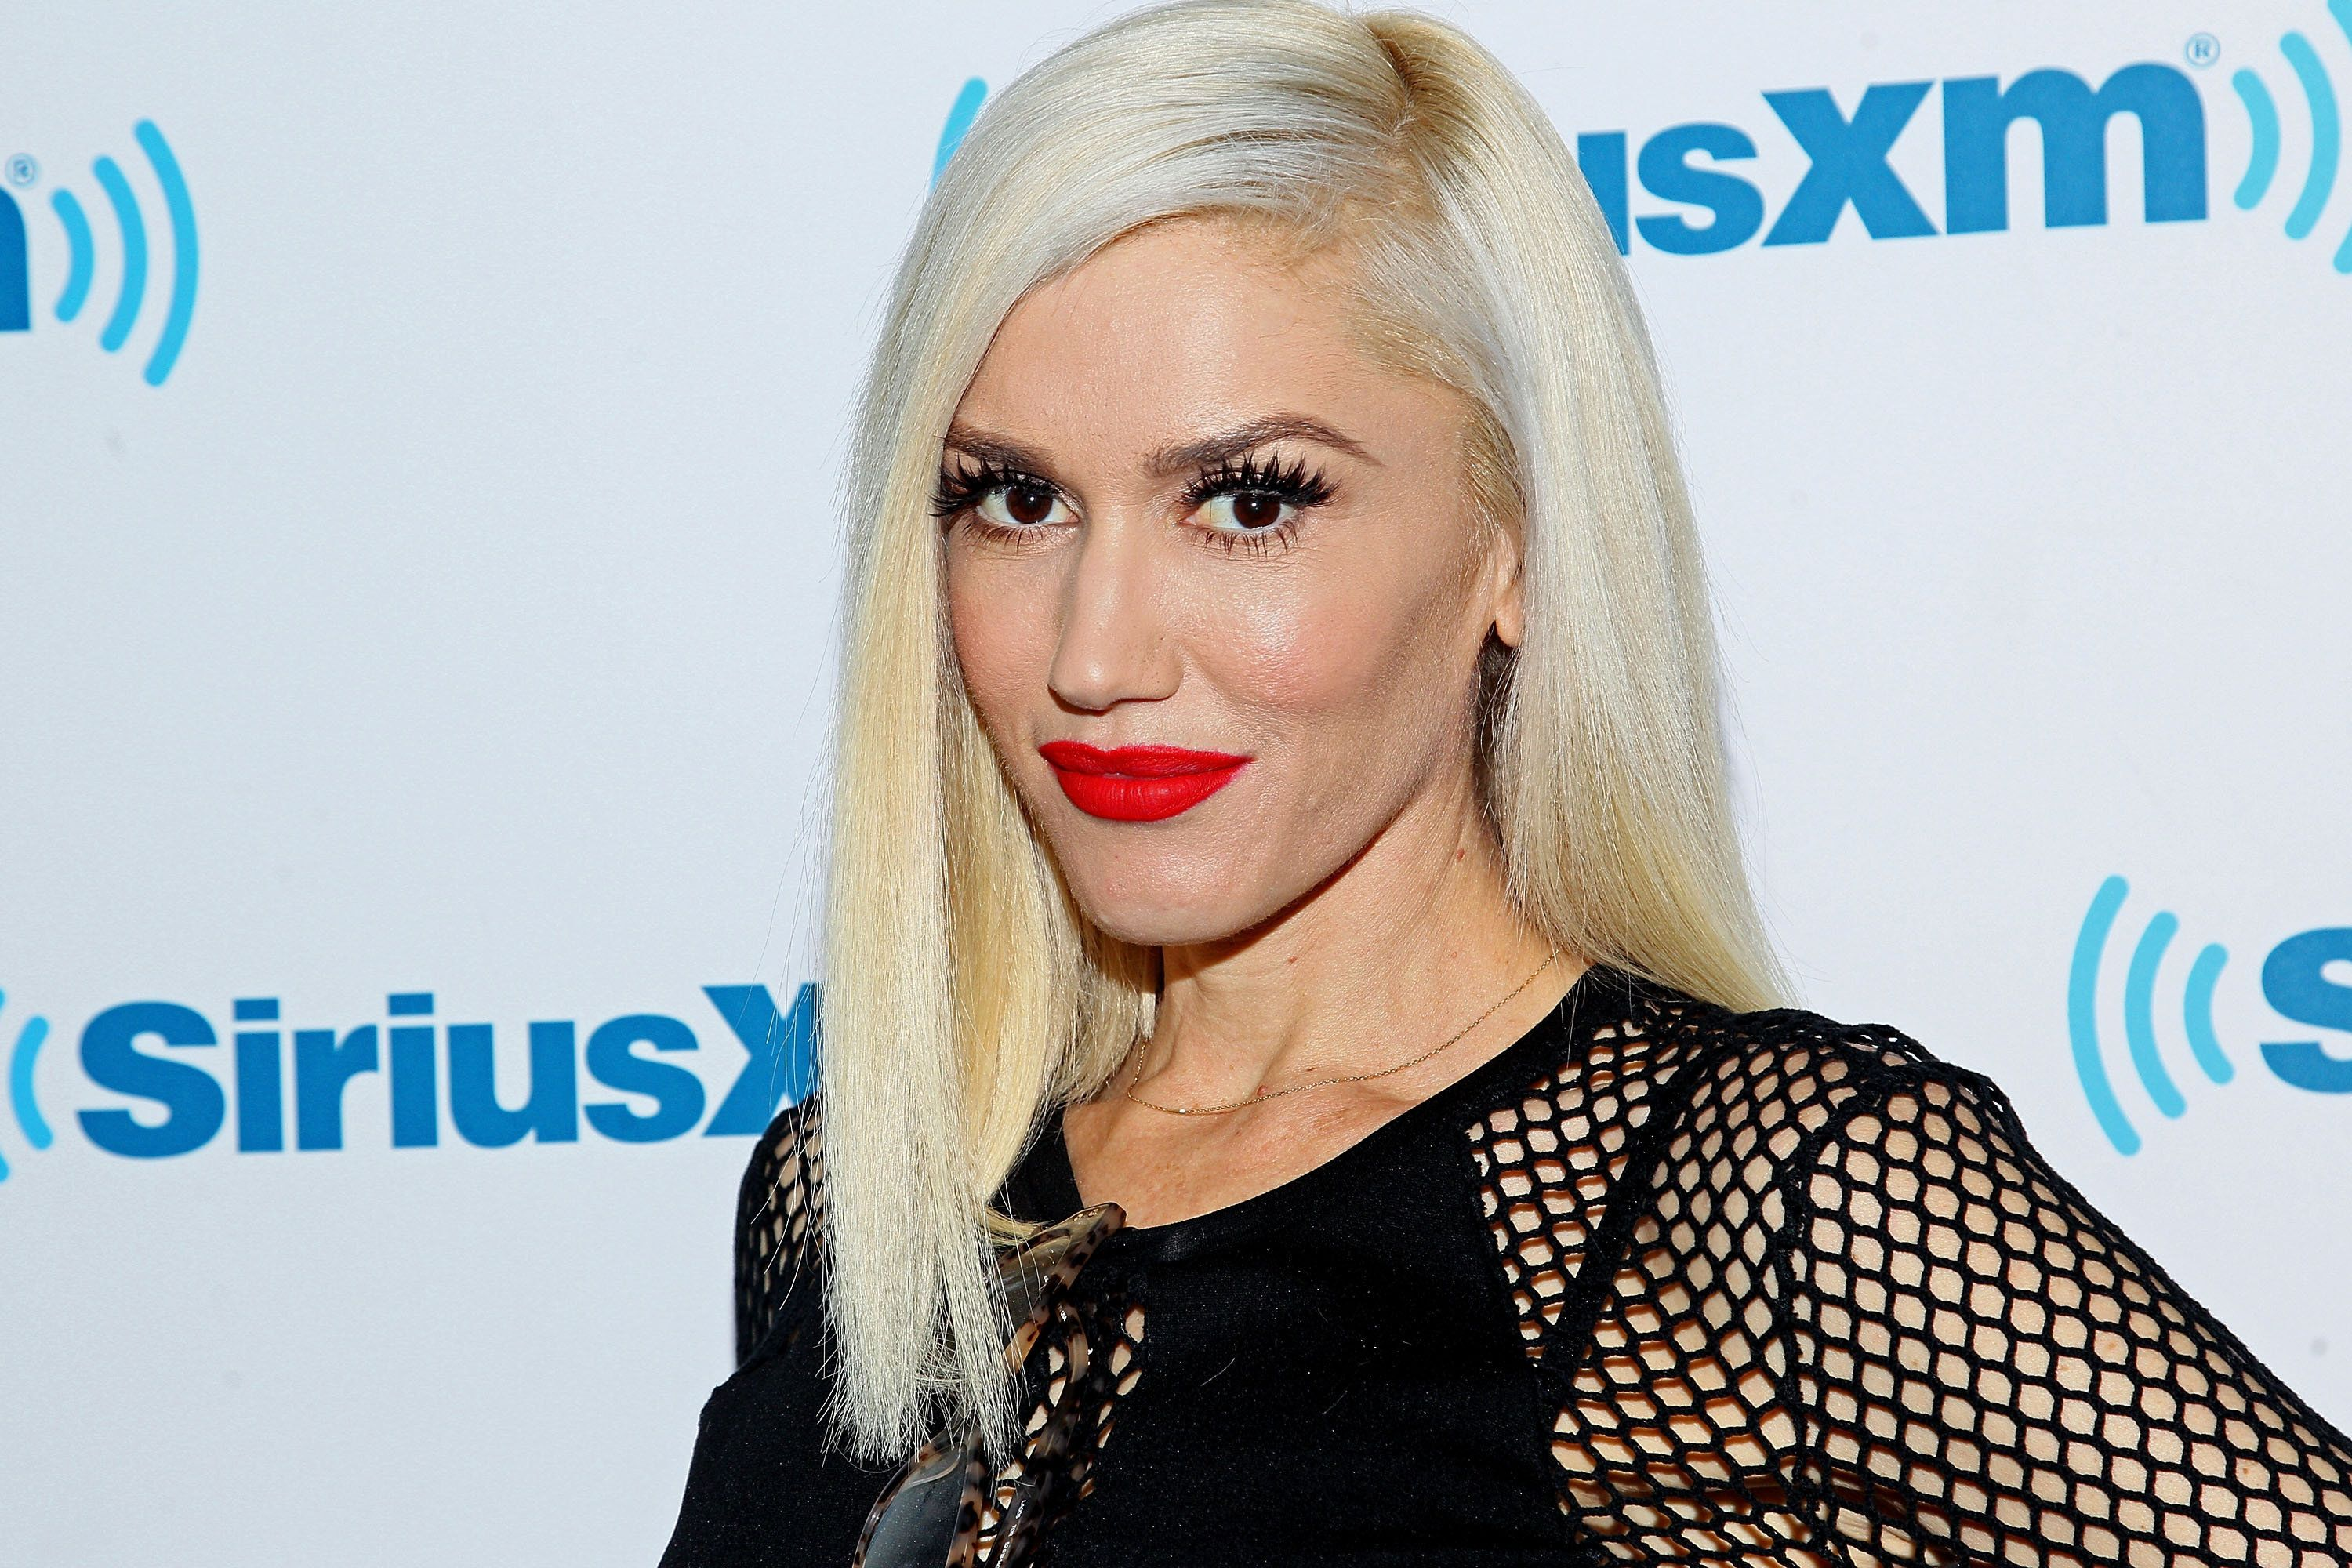 NEW YORK, NY - DECEMBER 03:  Gwen Stefani visits SiriusXM Studios on December 3, 2015 at SiriusXM Studios on December 3, 2015 in New York City.  (Photo by Steve Mack/Getty Images)